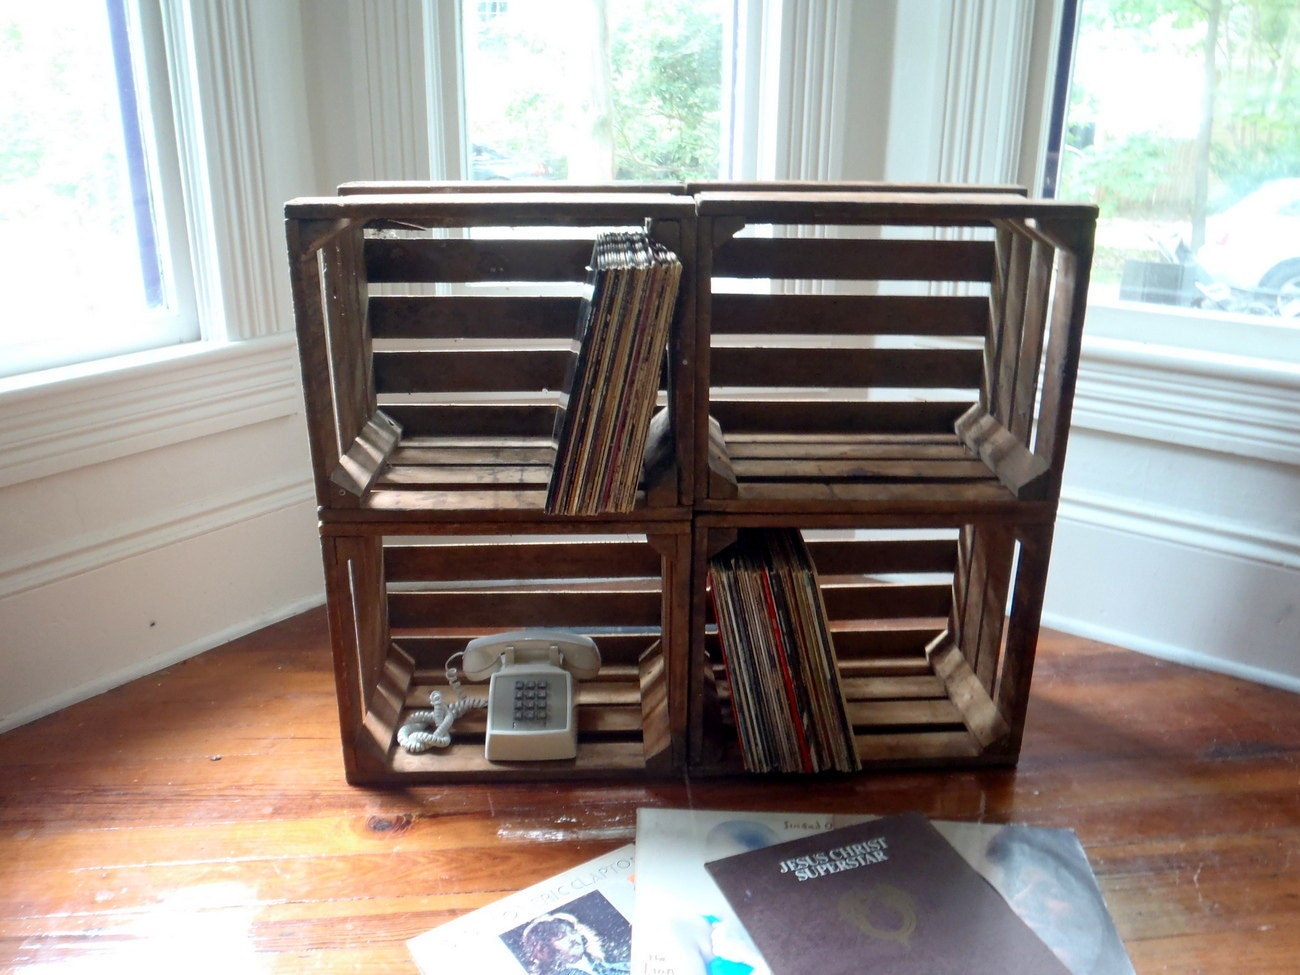 Wooden Crates Record Holders Home Furniture Pinterest: wooden crates furniture